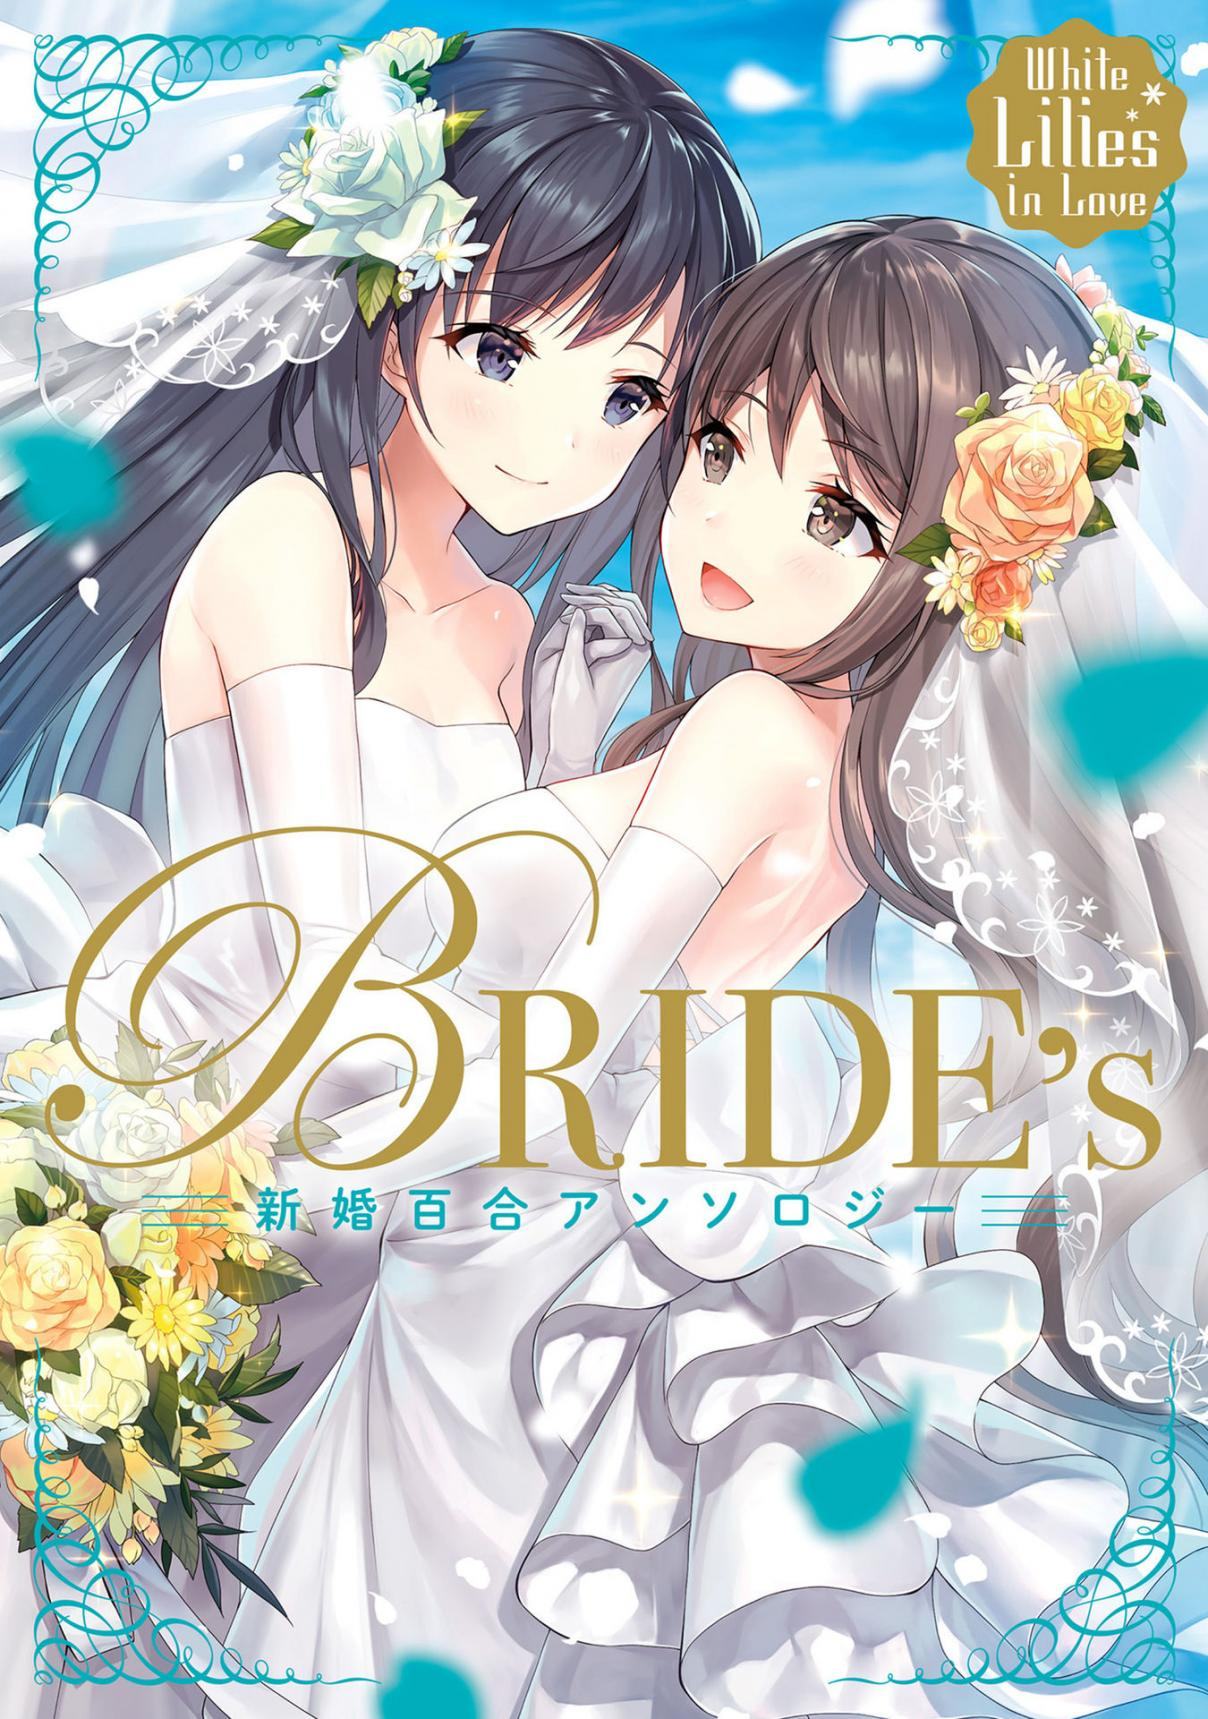 White Lilies in Love BRIDE's Newlywed Yuri Anthology Vol. 1 Ch. 1 My Wife is Too Precious (Hisakawa Haru)